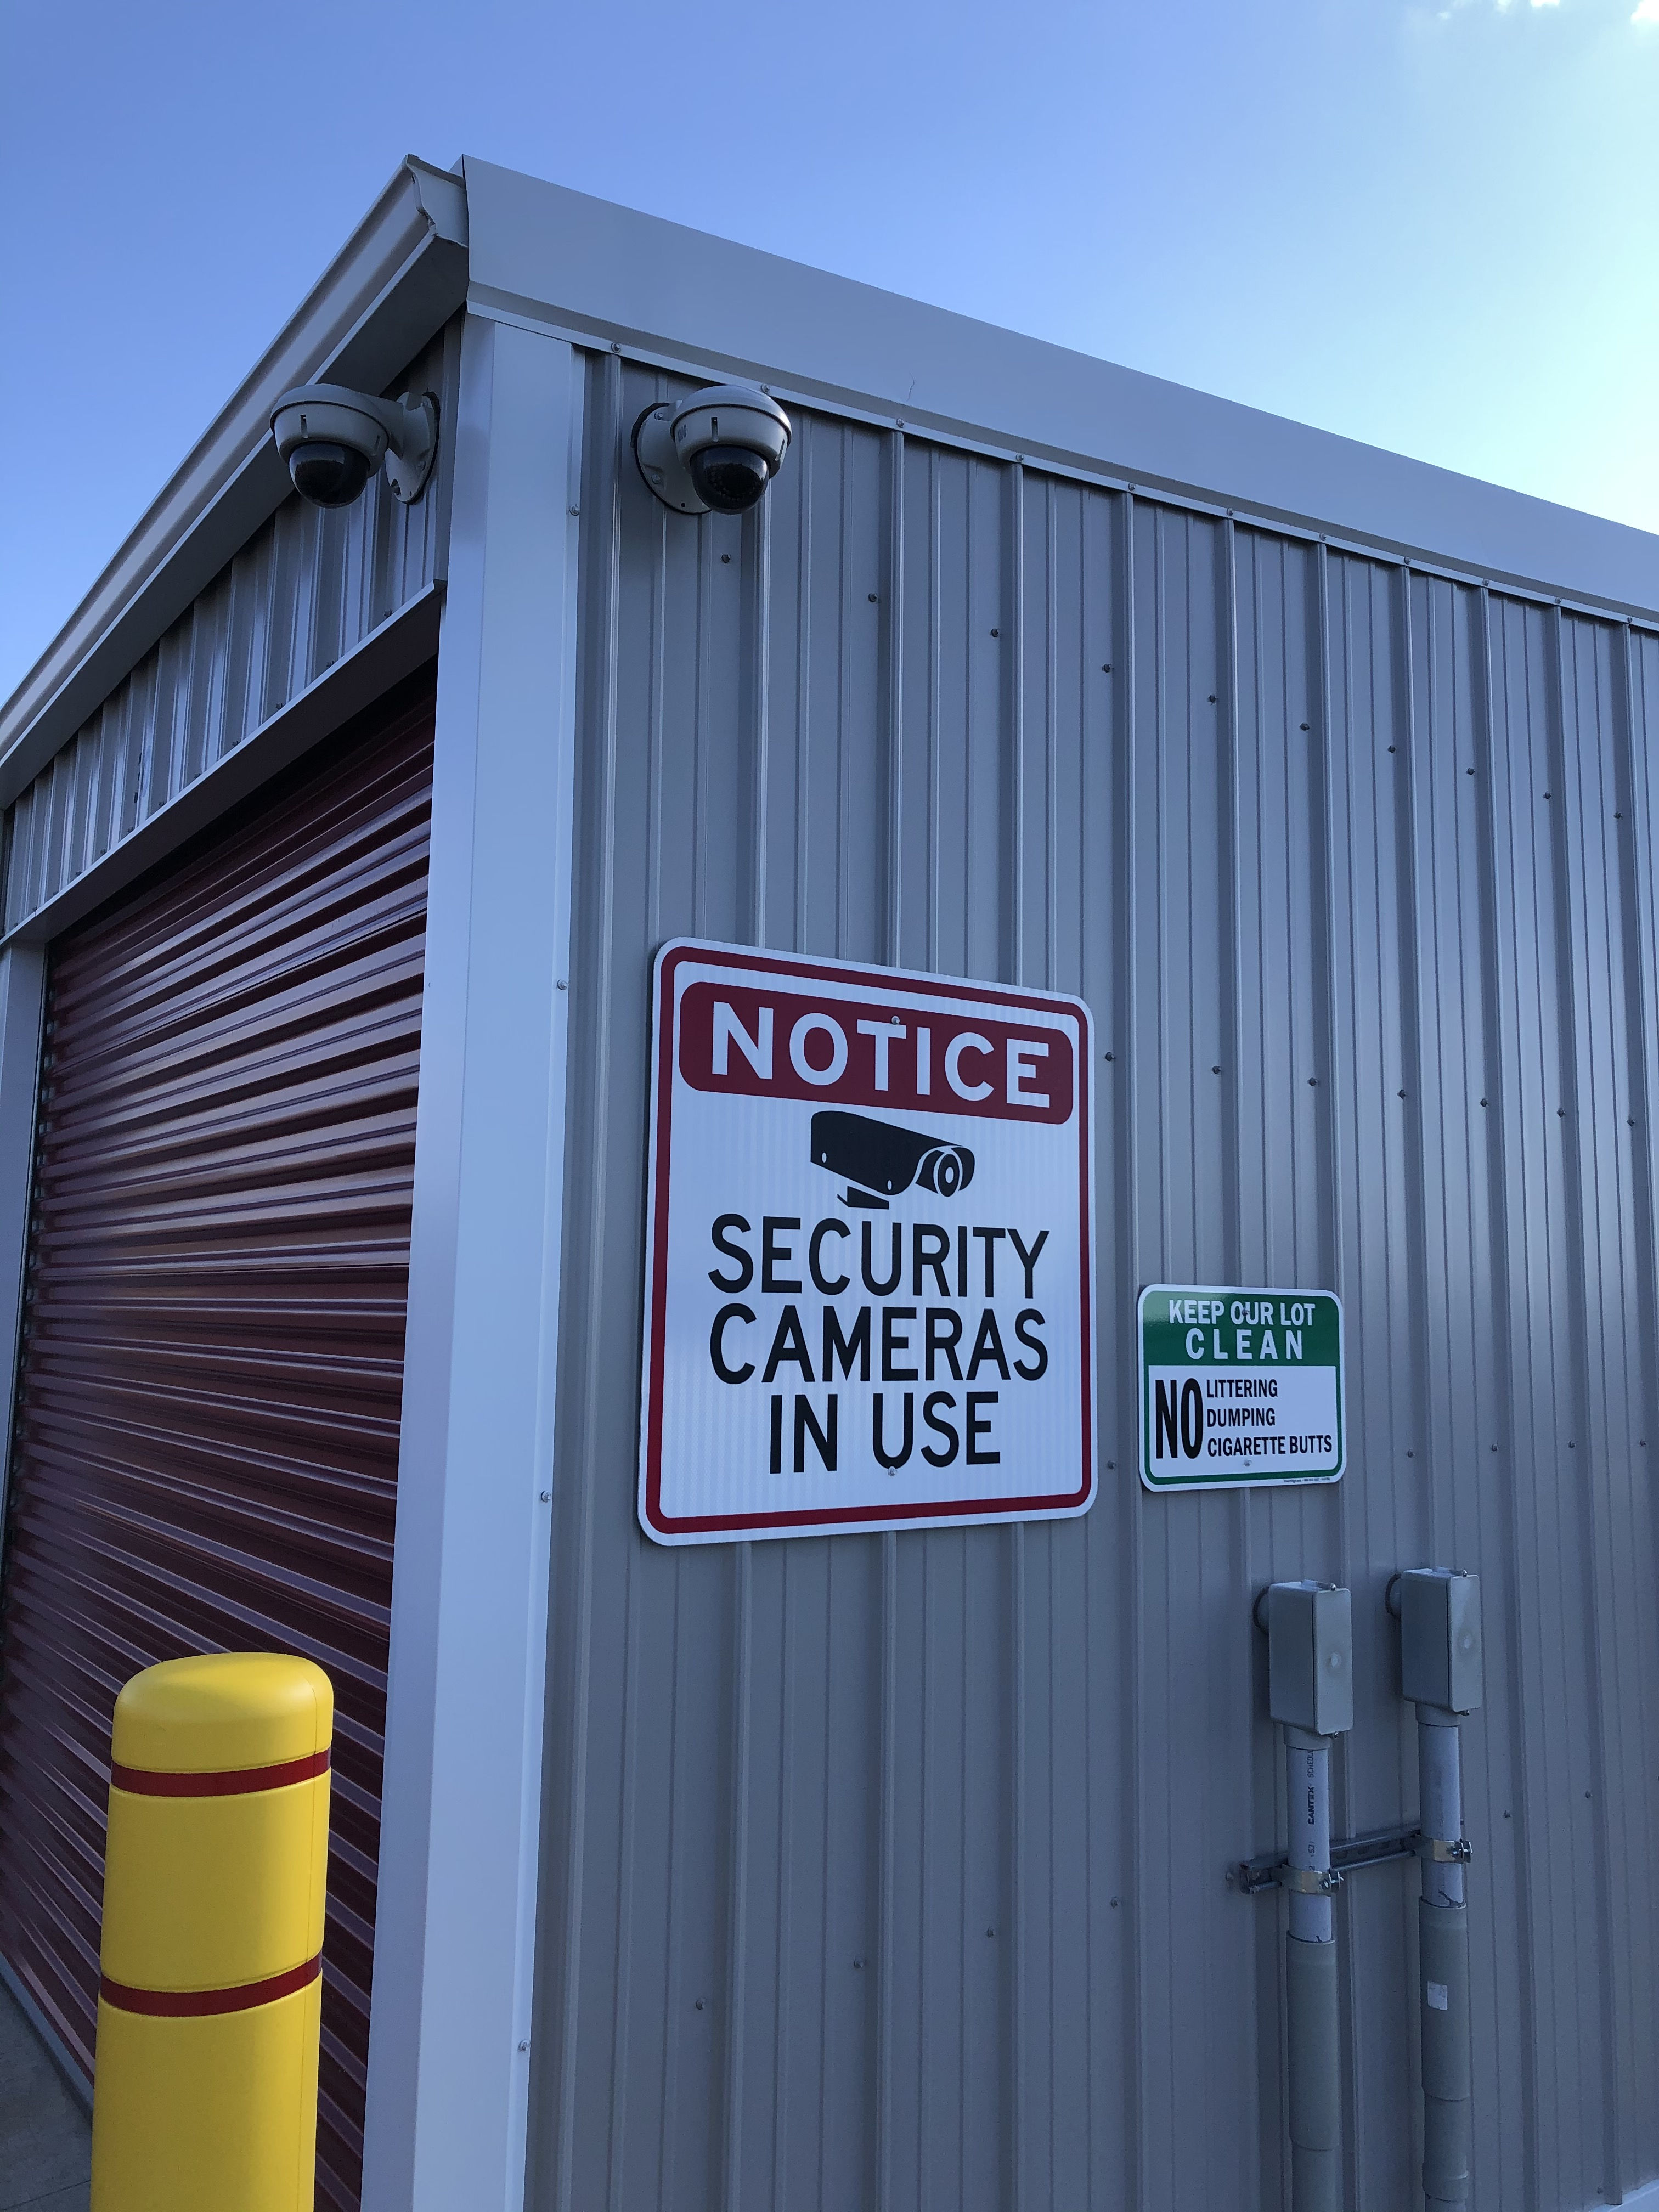 State of the art security system at Vrana Mini Storage in Tomah, WI